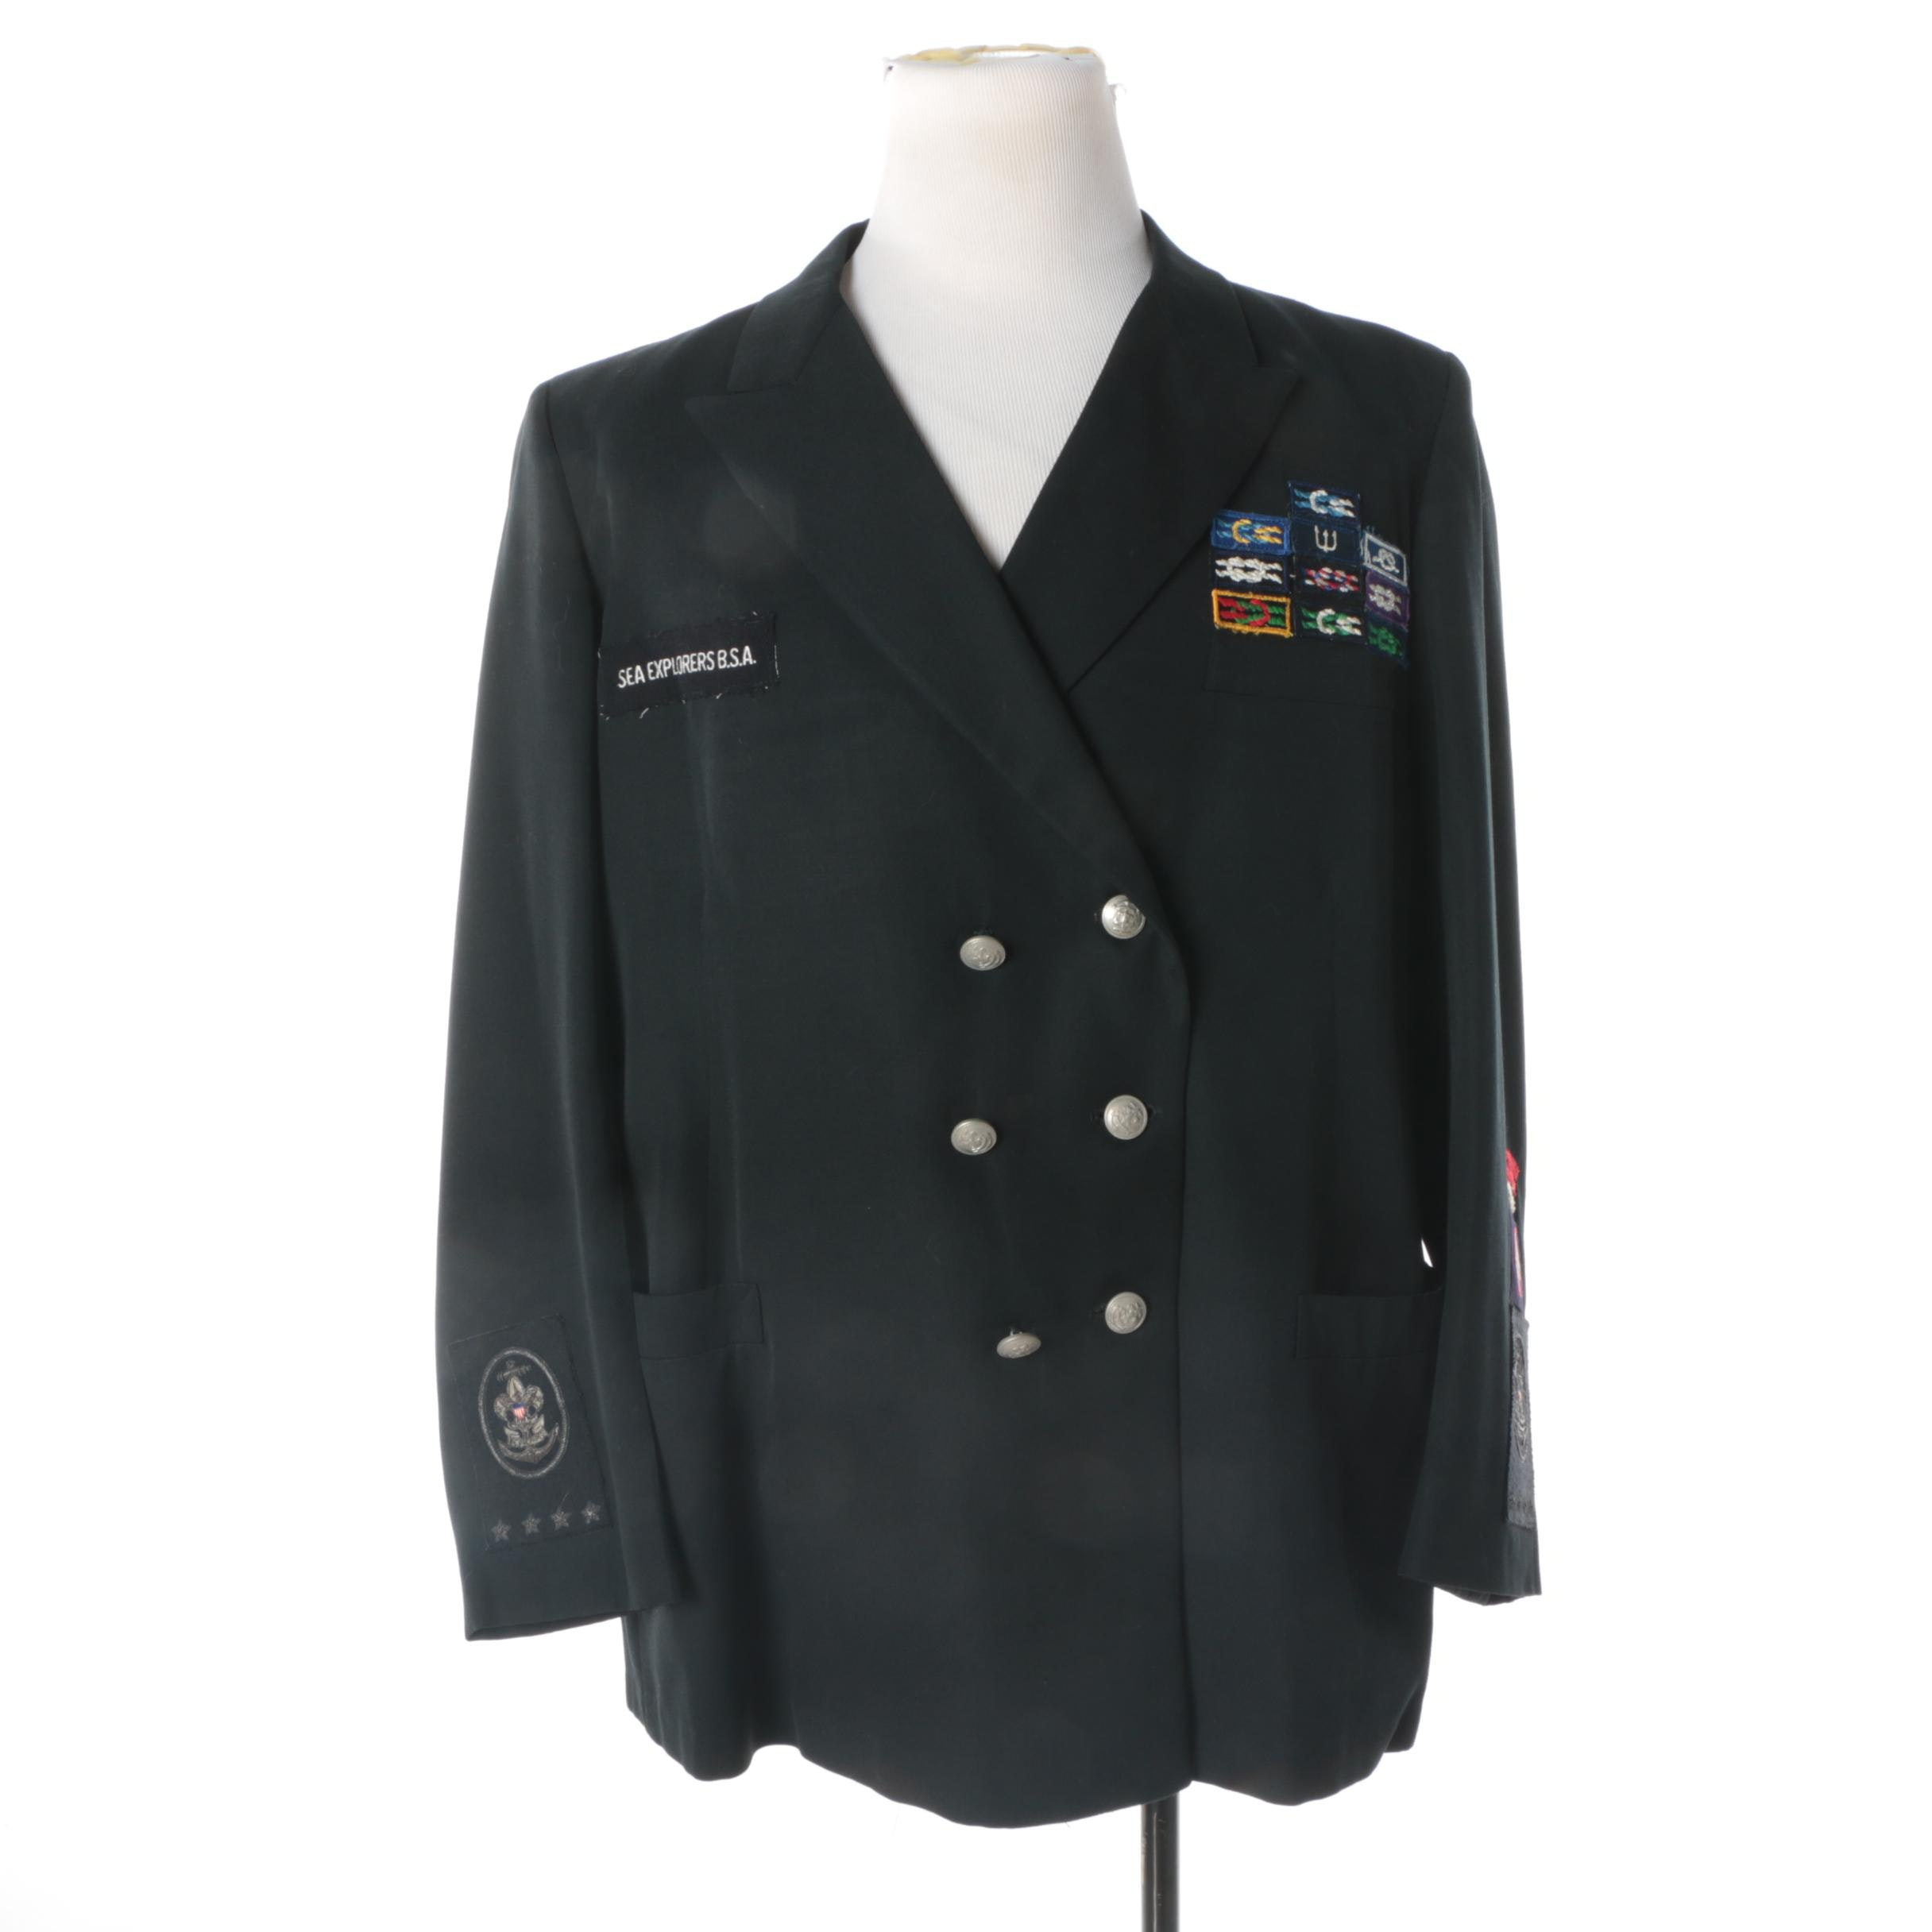 Sea Explorers B.S.A. Black Wool Double-Breasted Jacket